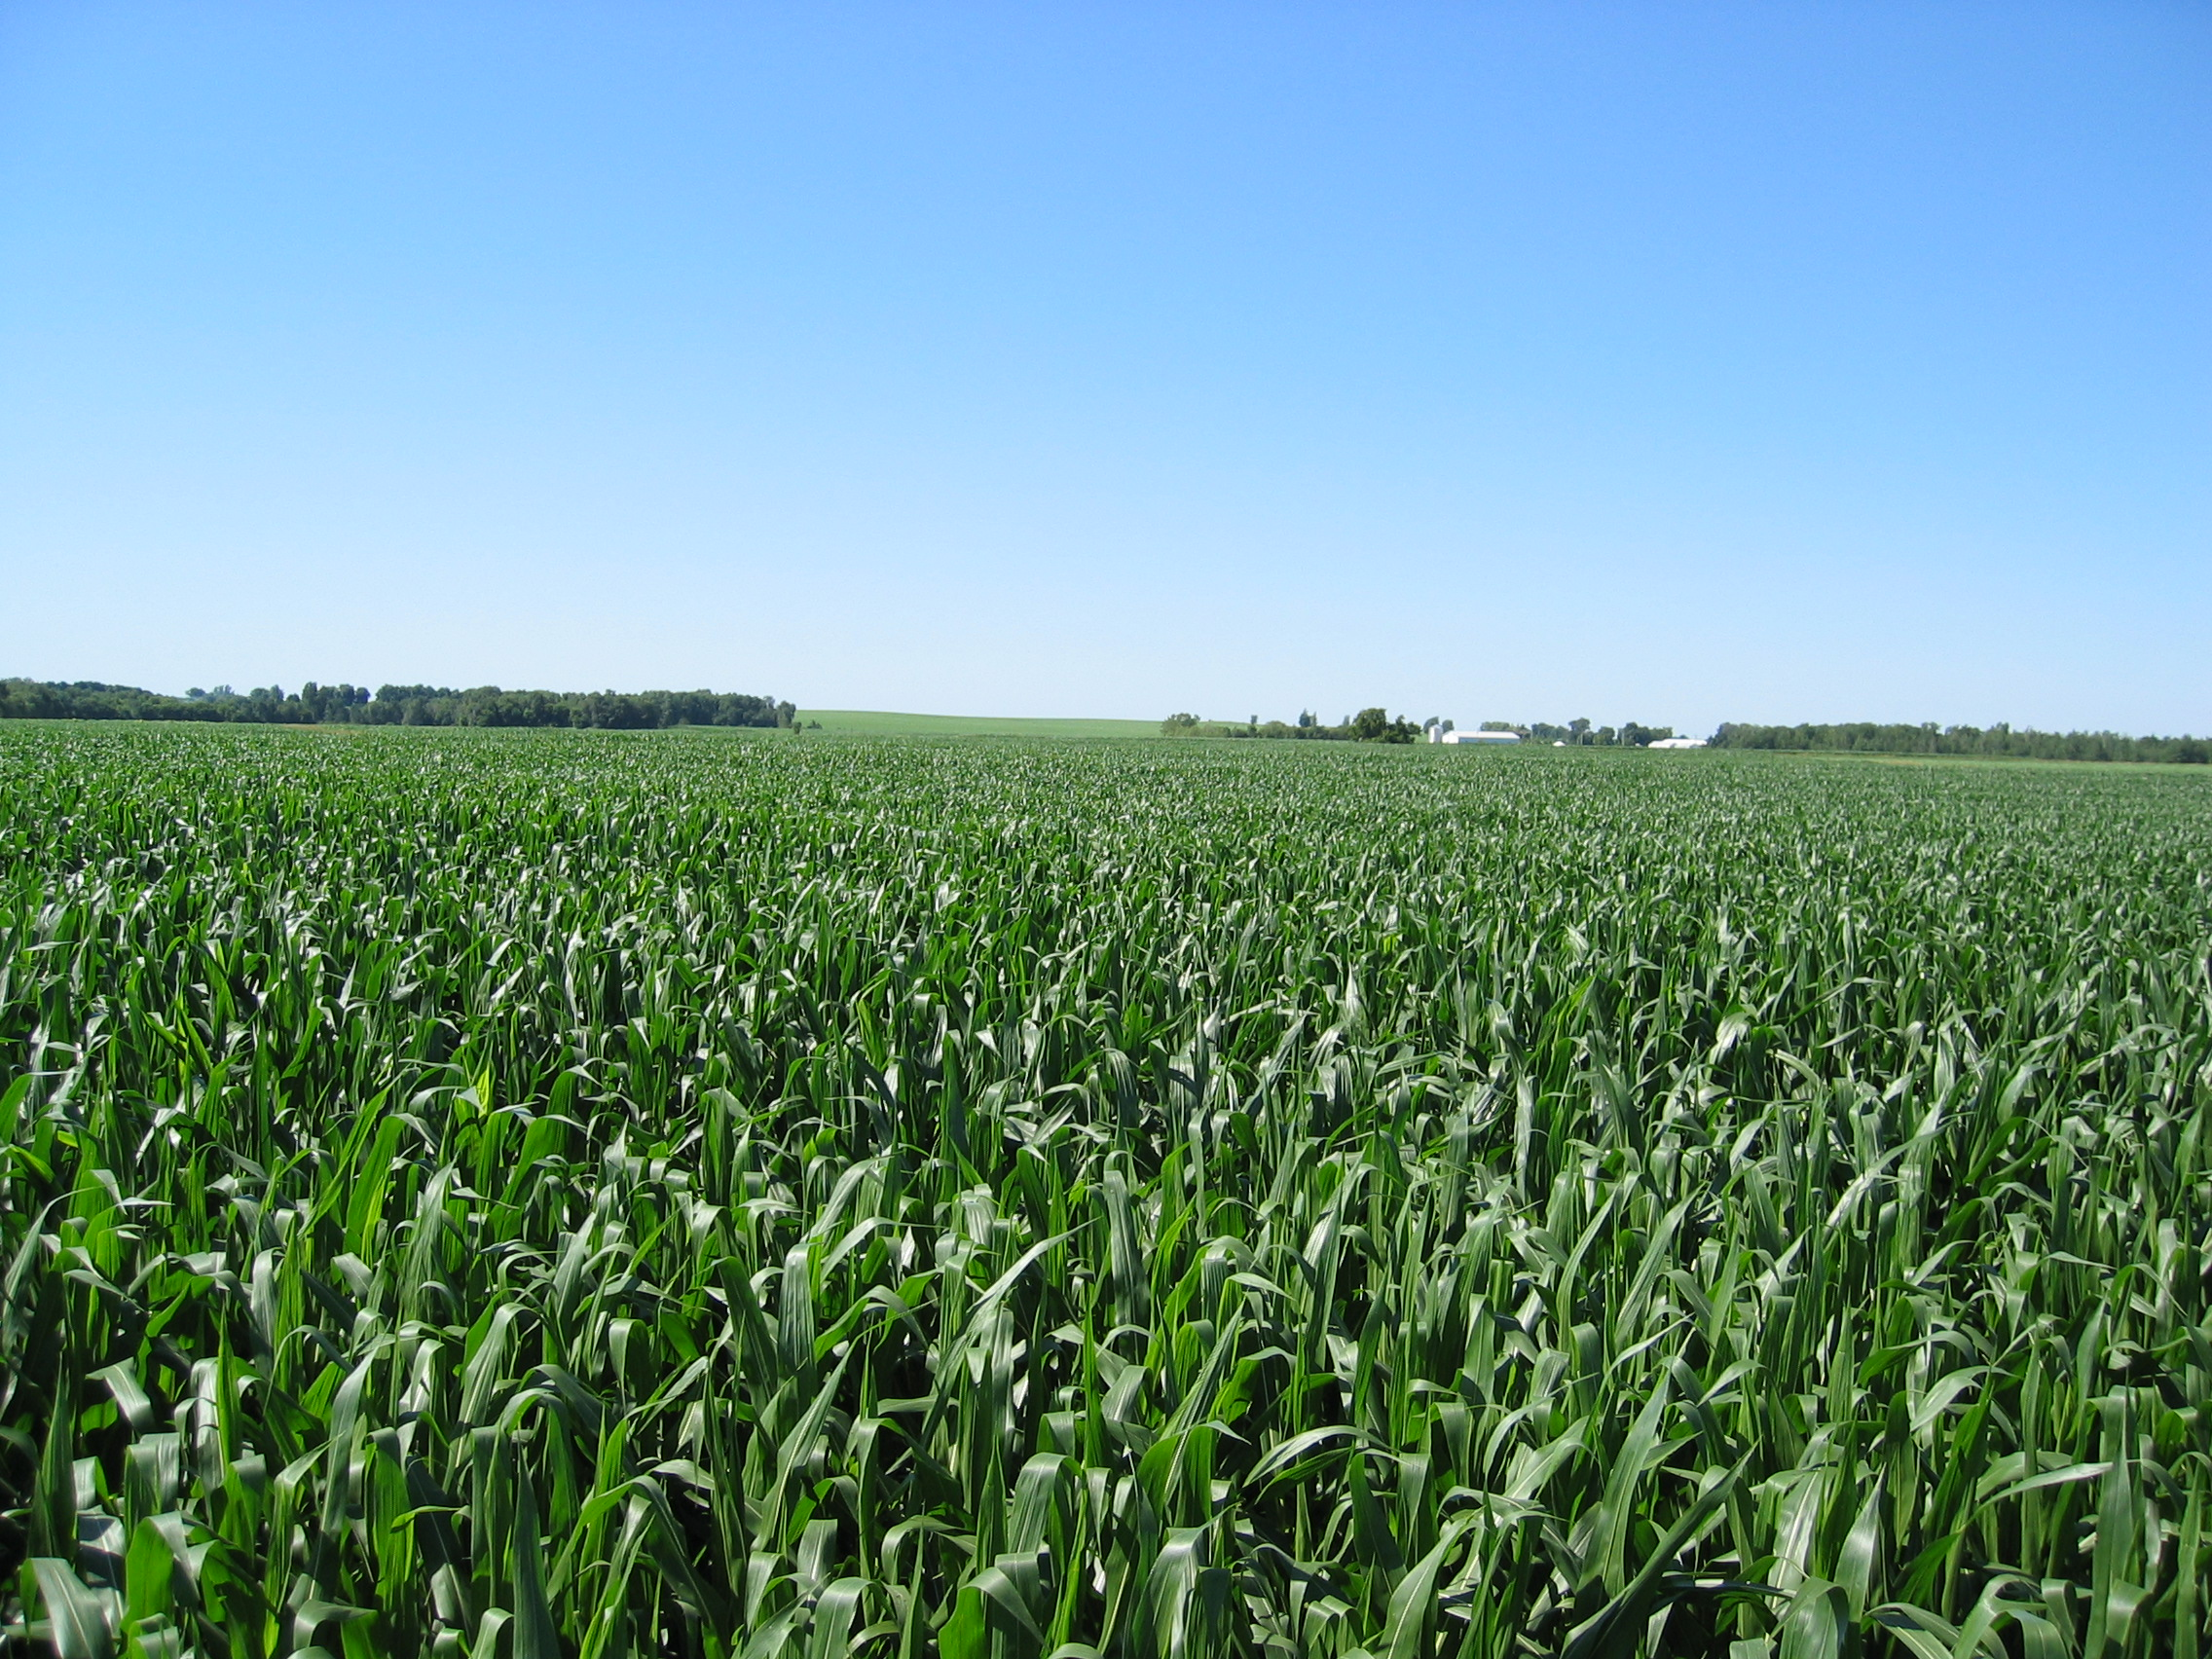 Want Your Crops To Survive Extreme Heat and Drought? Add Fungus